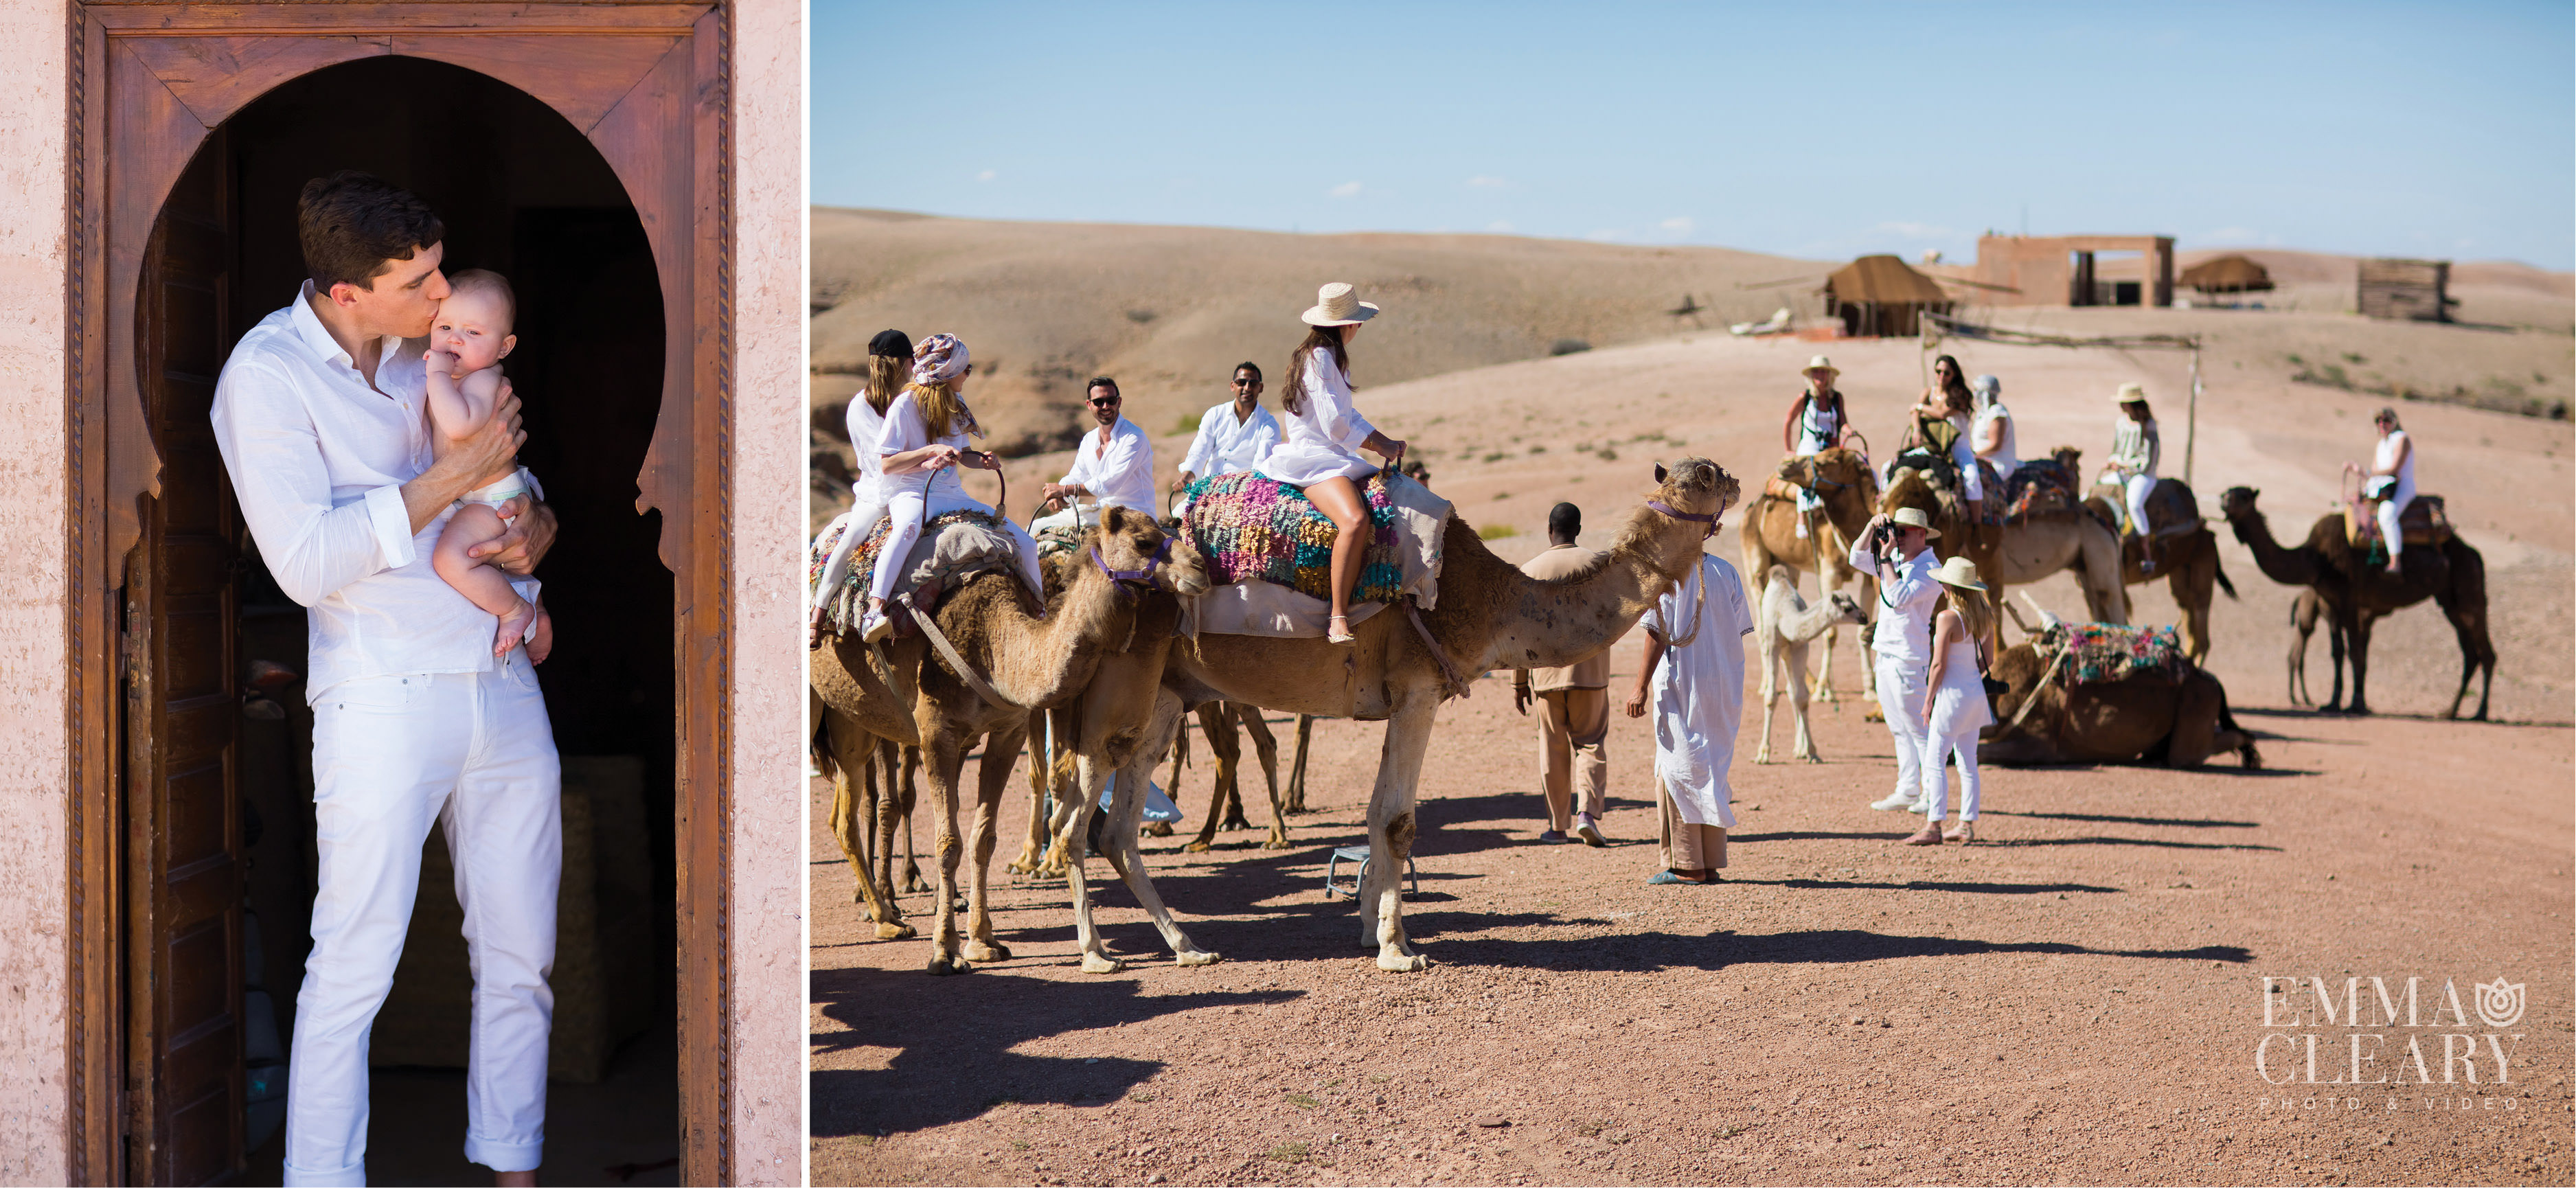 Emma_cleary_photography Destination Wedding Morrocco04